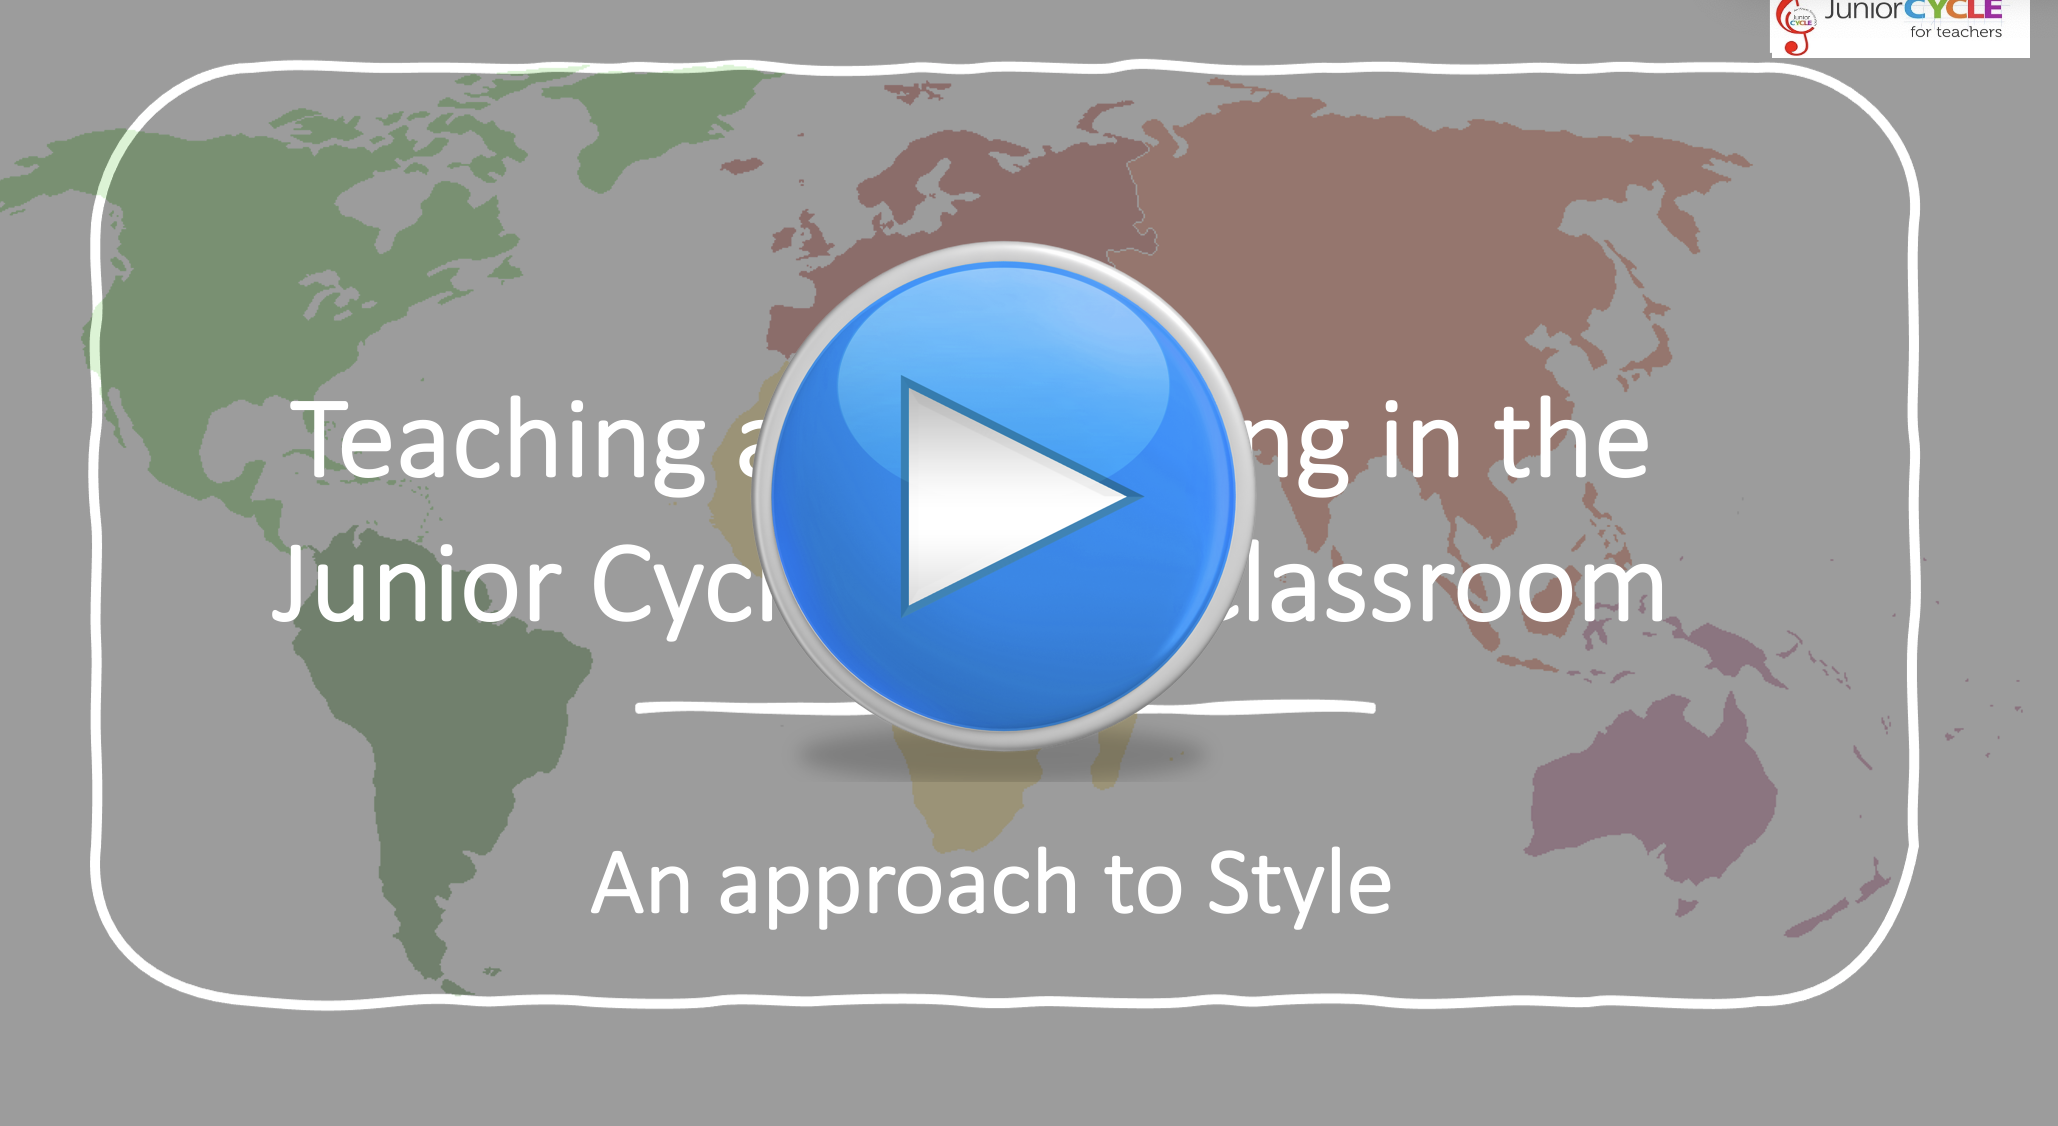 Online Learning - An Approach to Style